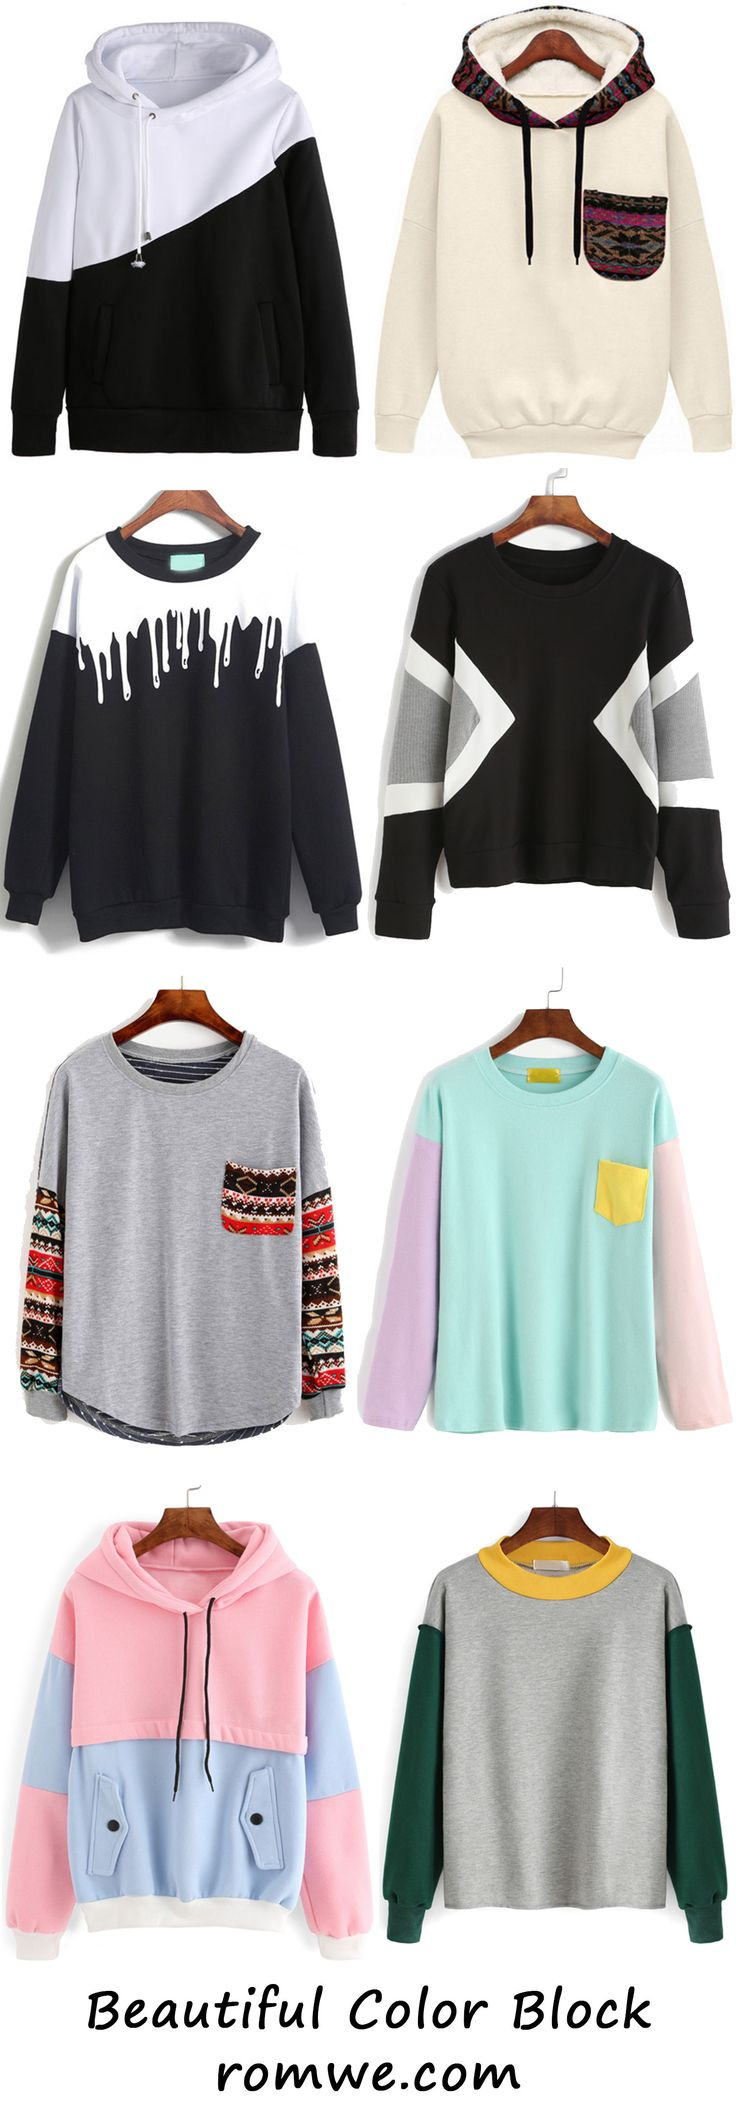 Fall Fashion - Pretty Color Block Tops from romwe.com